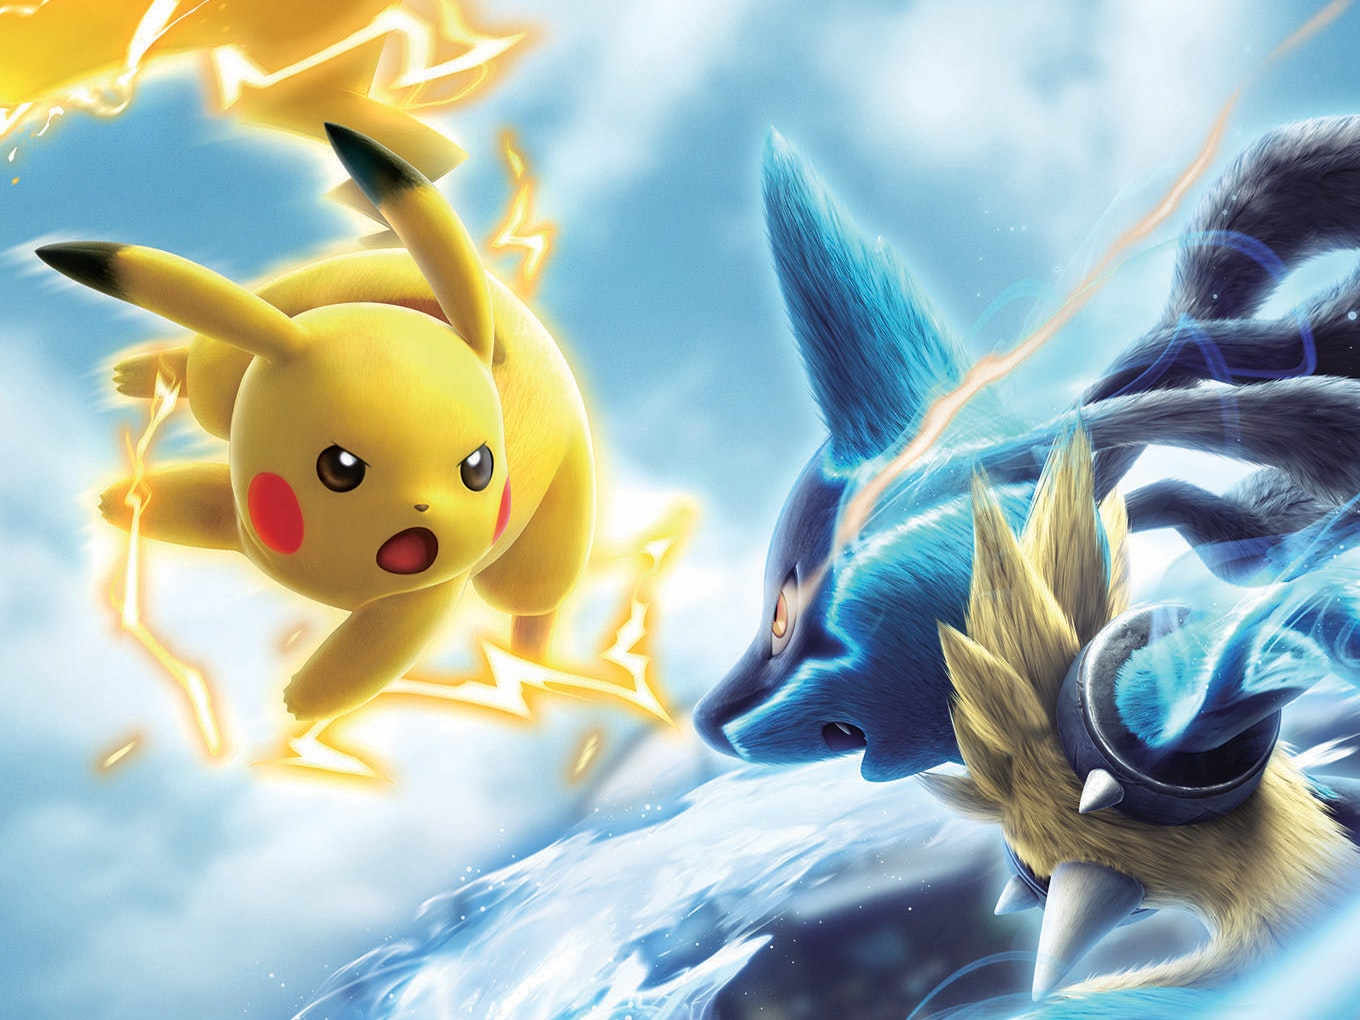 A Live-Action 'Pokemon' Movie Could Send Japan and China to Cultural War